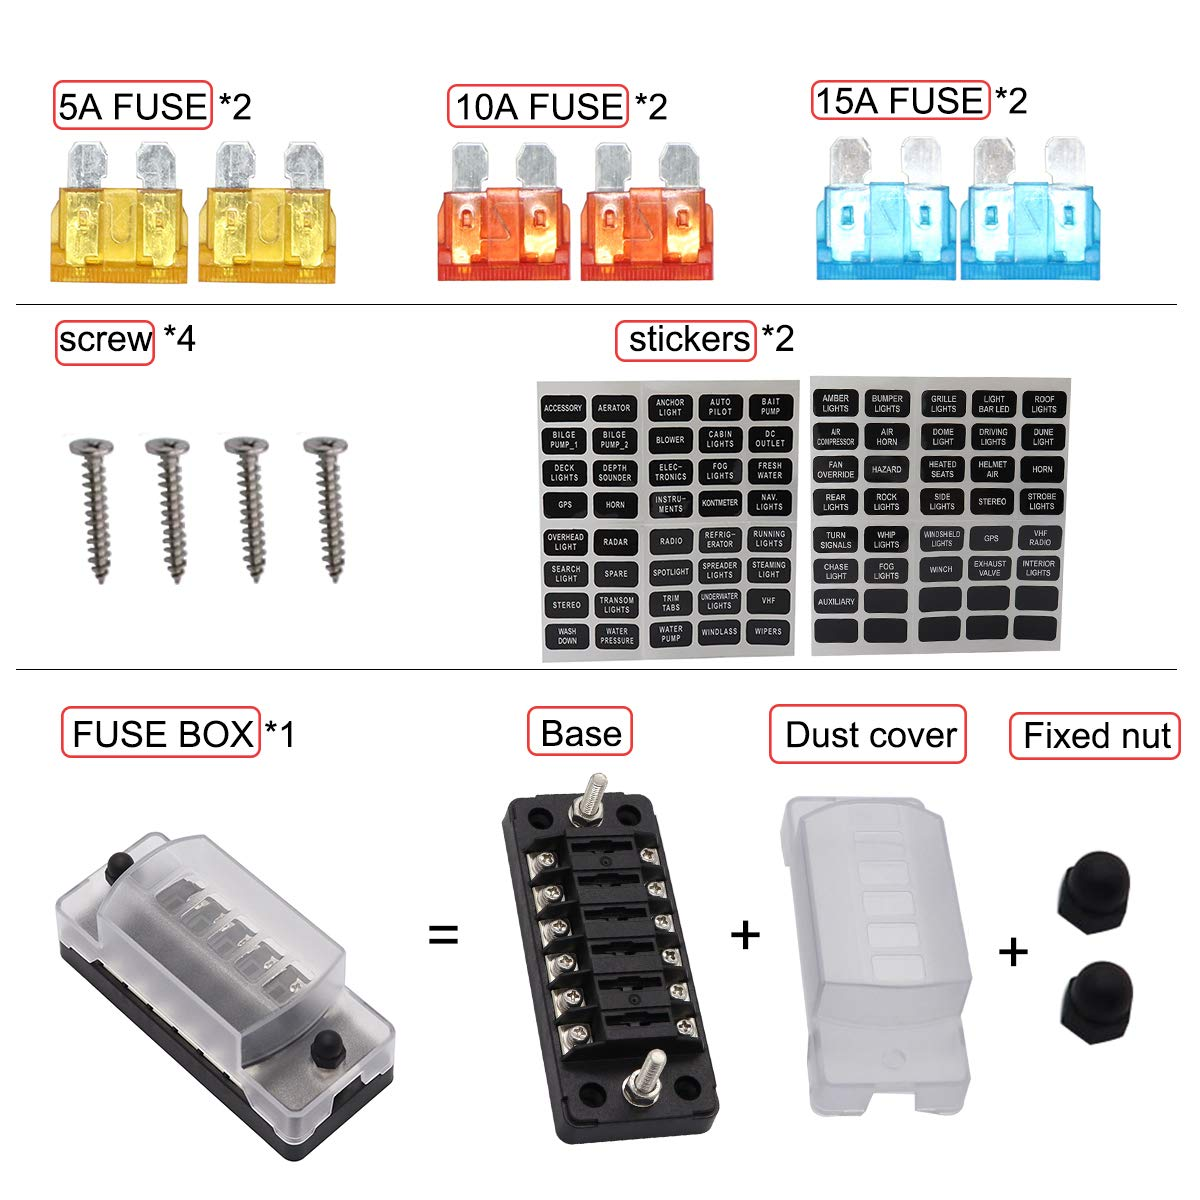 6 Way Fuse Block for Boat Marine Car Camper Travel Trailer RV Motorhome Solar System Fuse Box 12V 32V DC Regular Fuses 5A 10A 15A PA66 Material